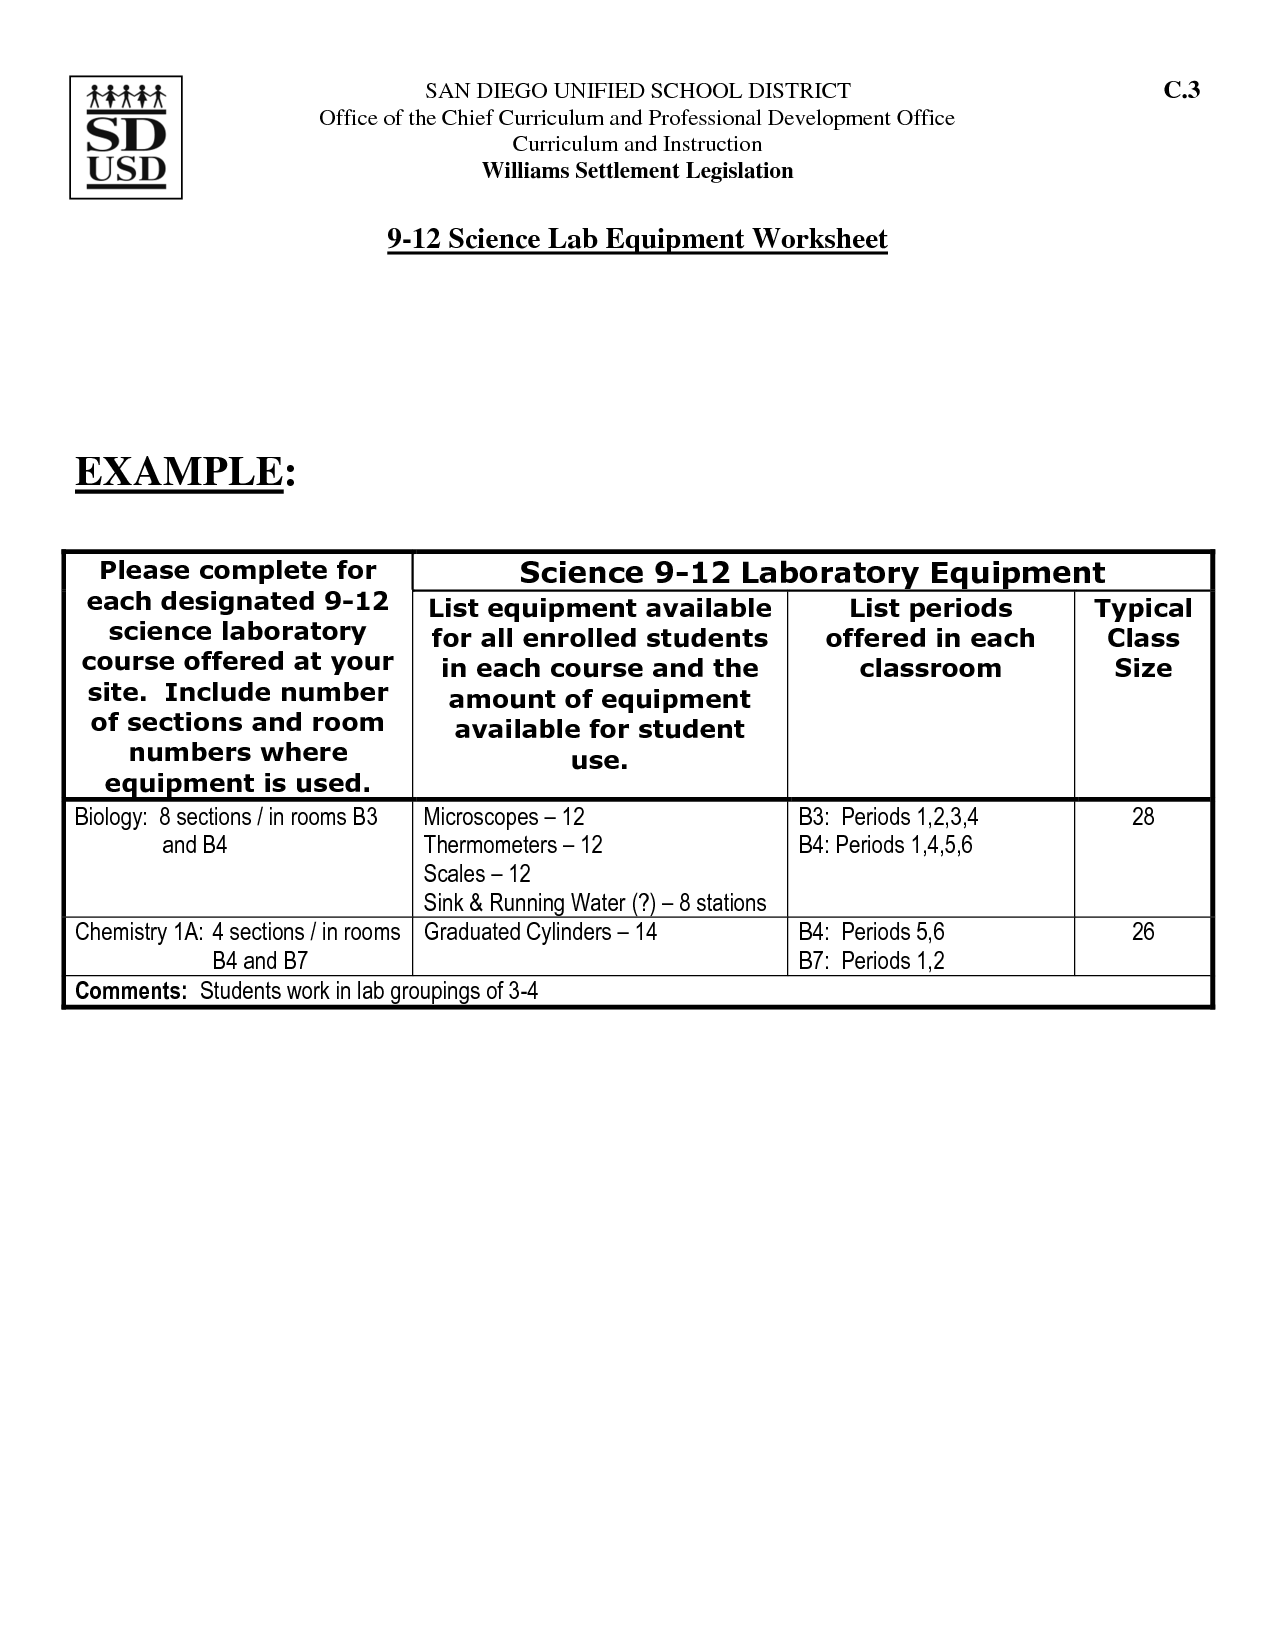 17 Best Images Of School Science Worksheets